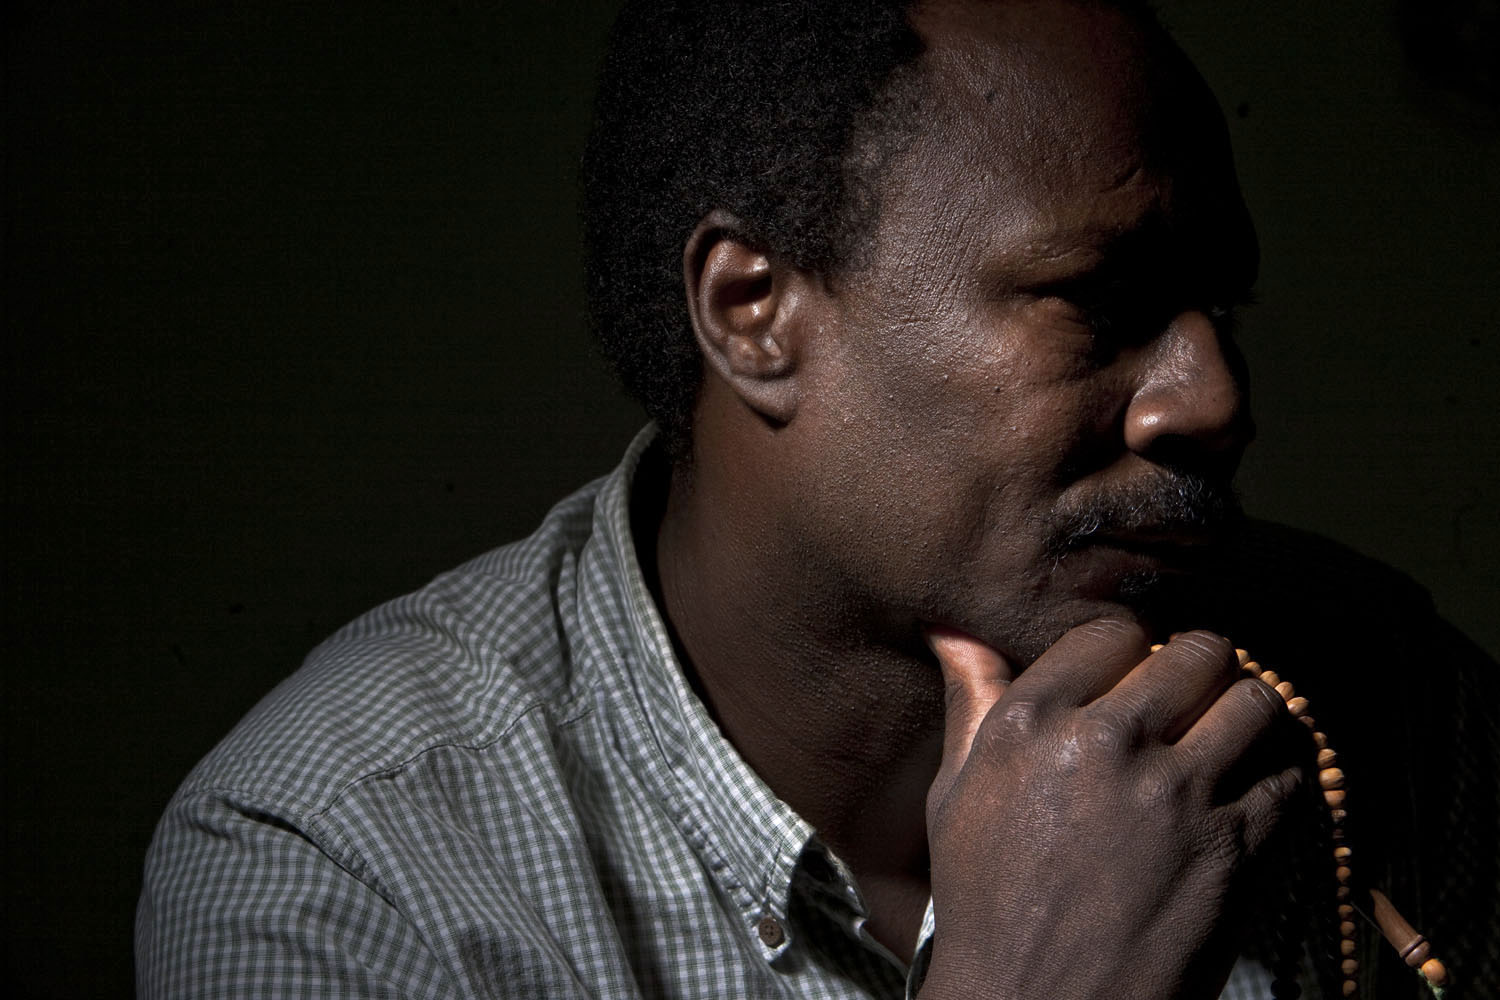 Gouma Mahamat holds religious sephaa beads in his Kensington apartment. The faint lines on his temple, received at age 2, identify him as a member of the Zaghawa tribe. Mr. Mahamat, a father of five, arrived in the United States in 1987. He considers himself the founder of the Brooklyn enclave of immigrants from Darfur, which now numbers over 300.